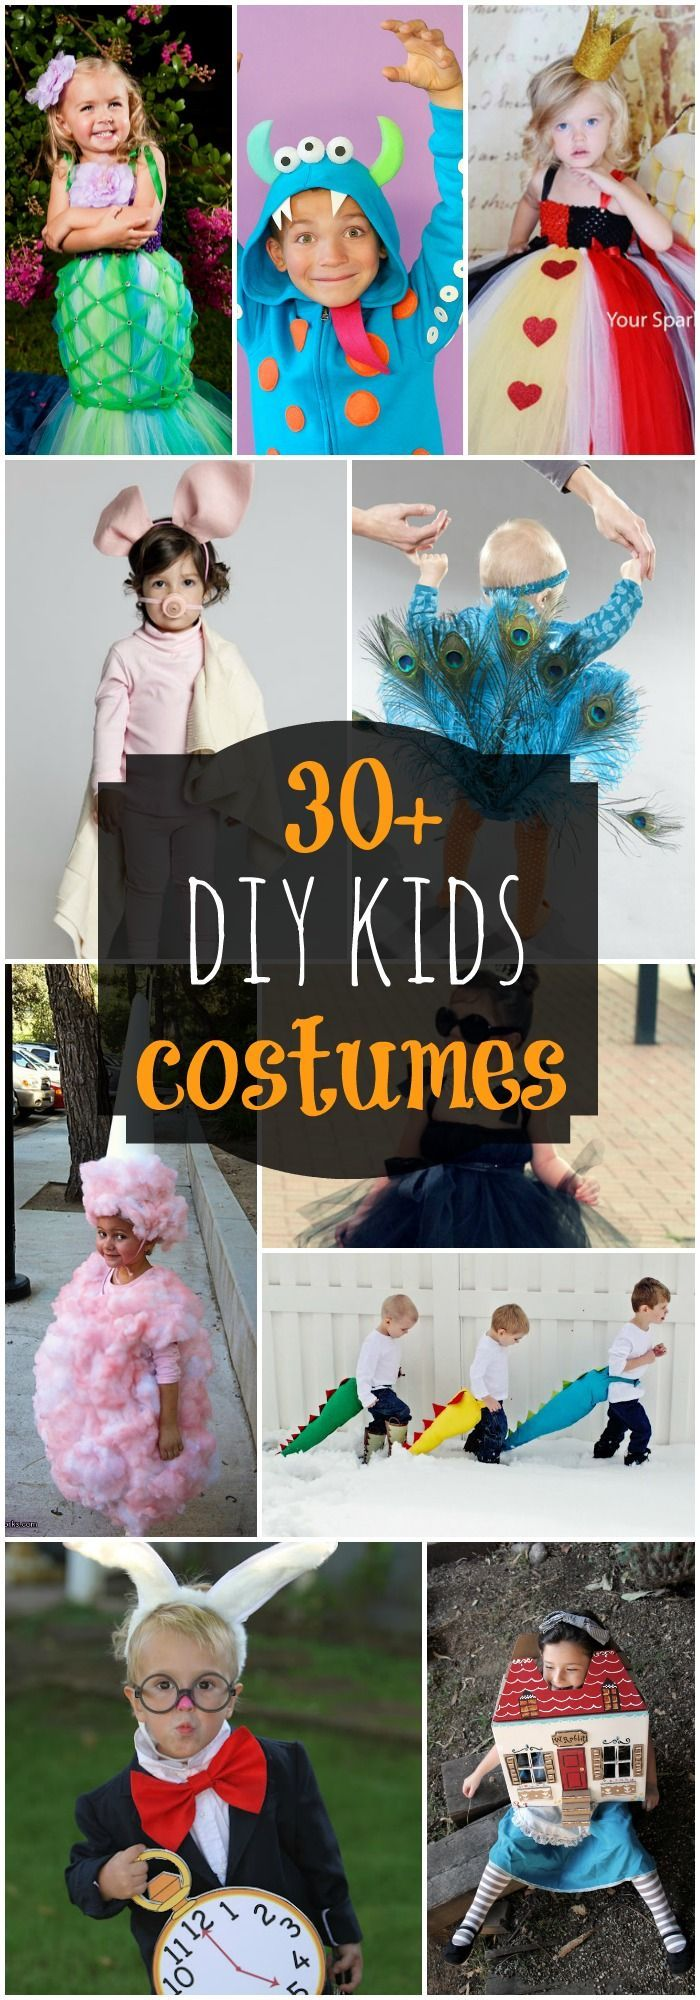 DIY costumes for kids! SO many adorable Halloween costumes that you can make for your kids!! { lilluna.com }